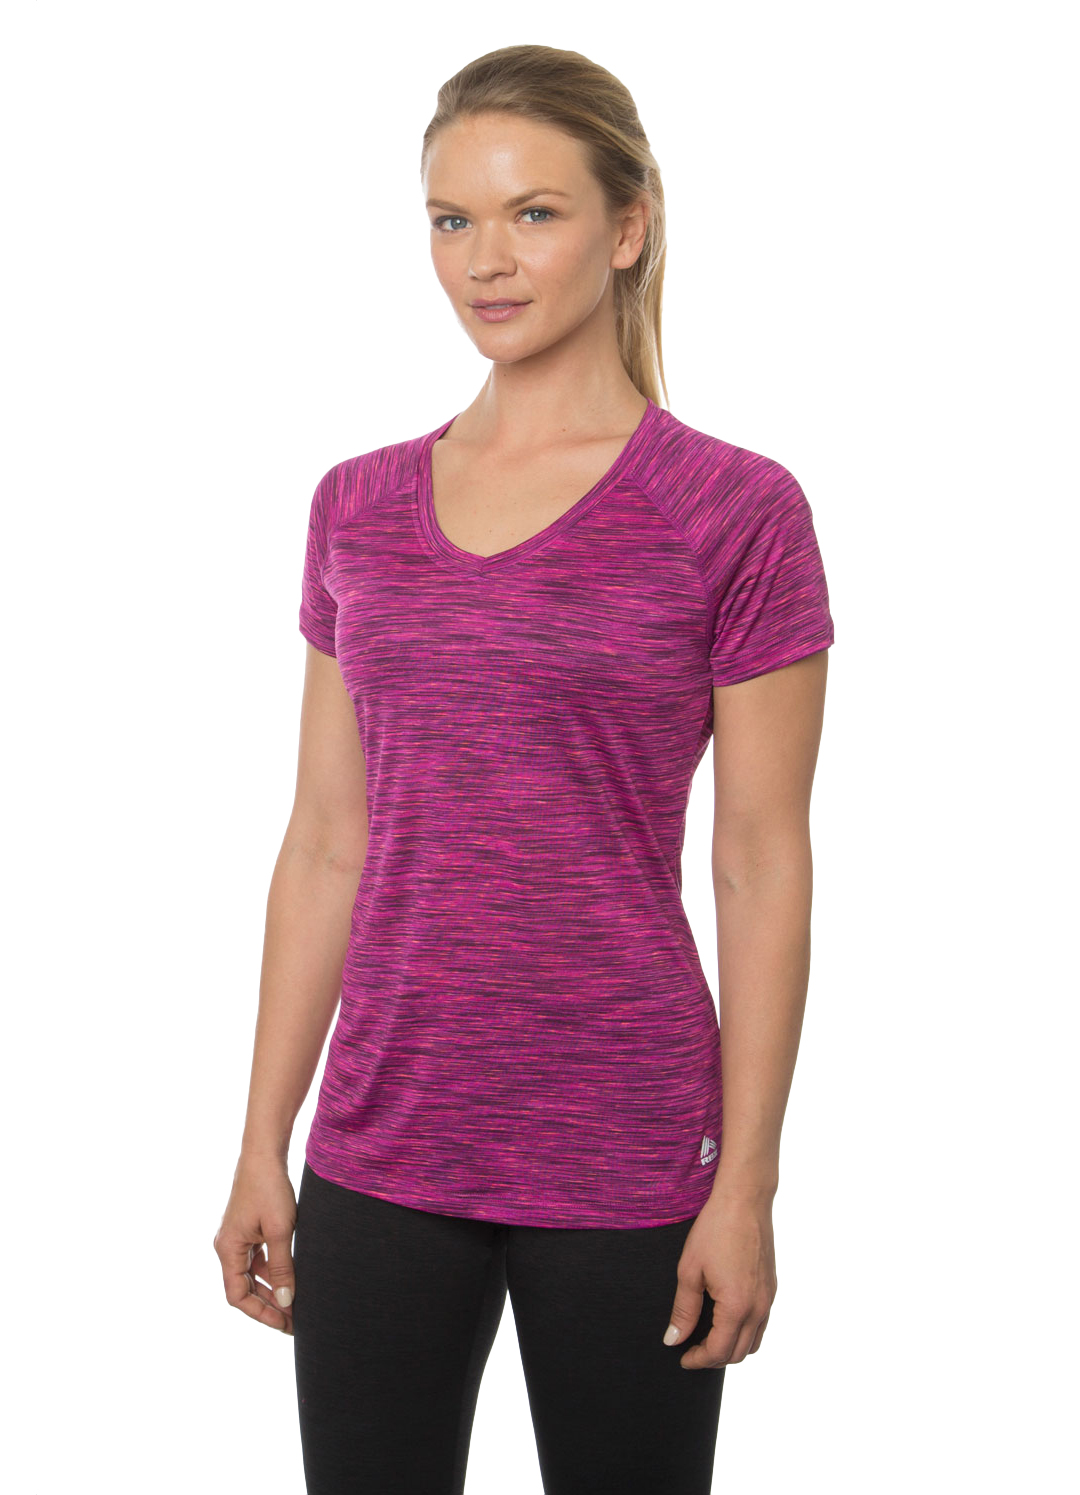 RBX Active Stratus Short Sleeve Speckled Space Dye V-Neck Workout Tee